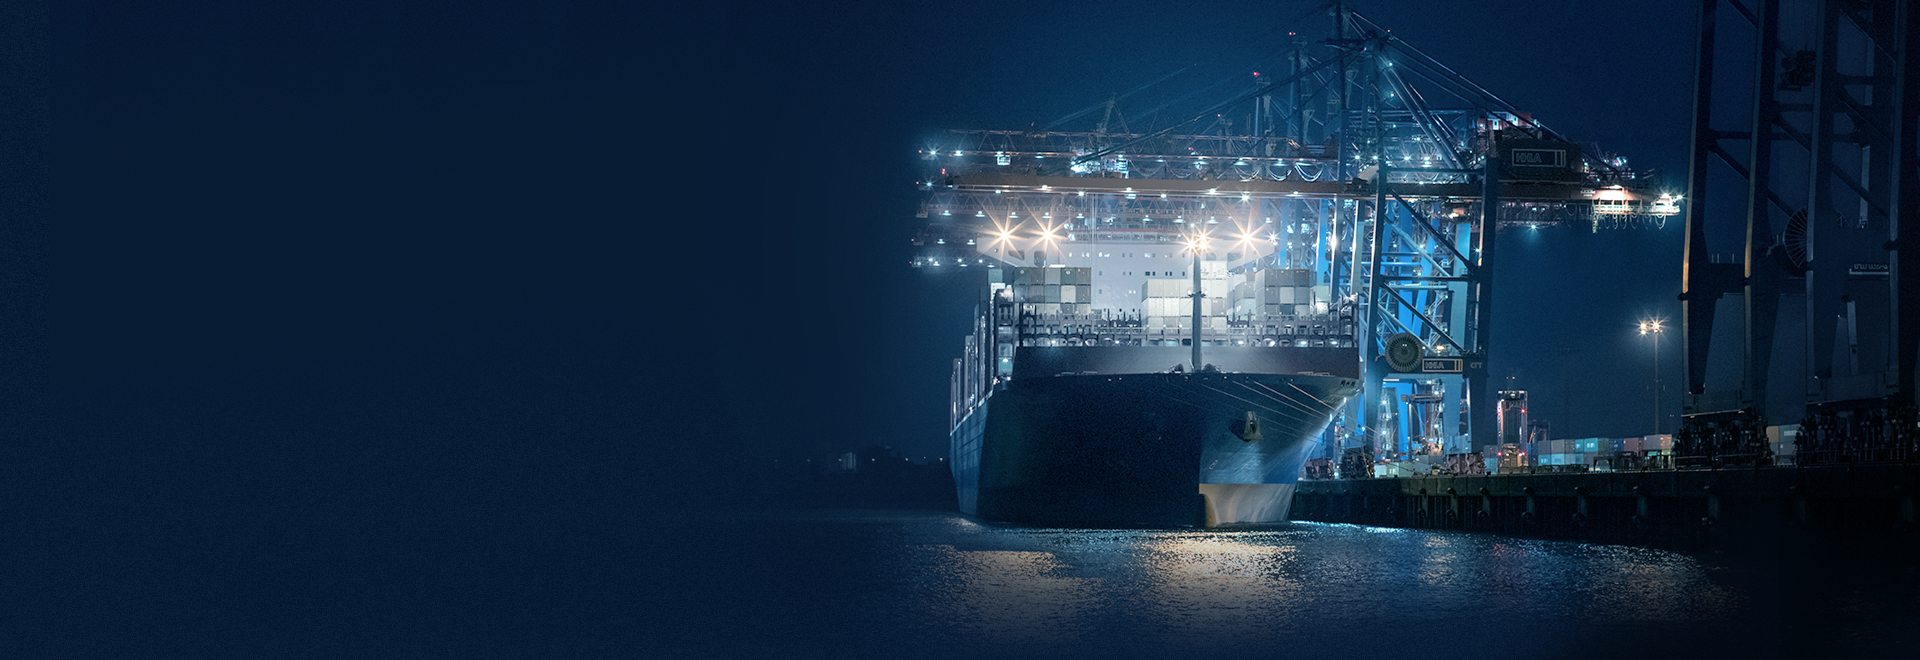 Sea freight ship and containers